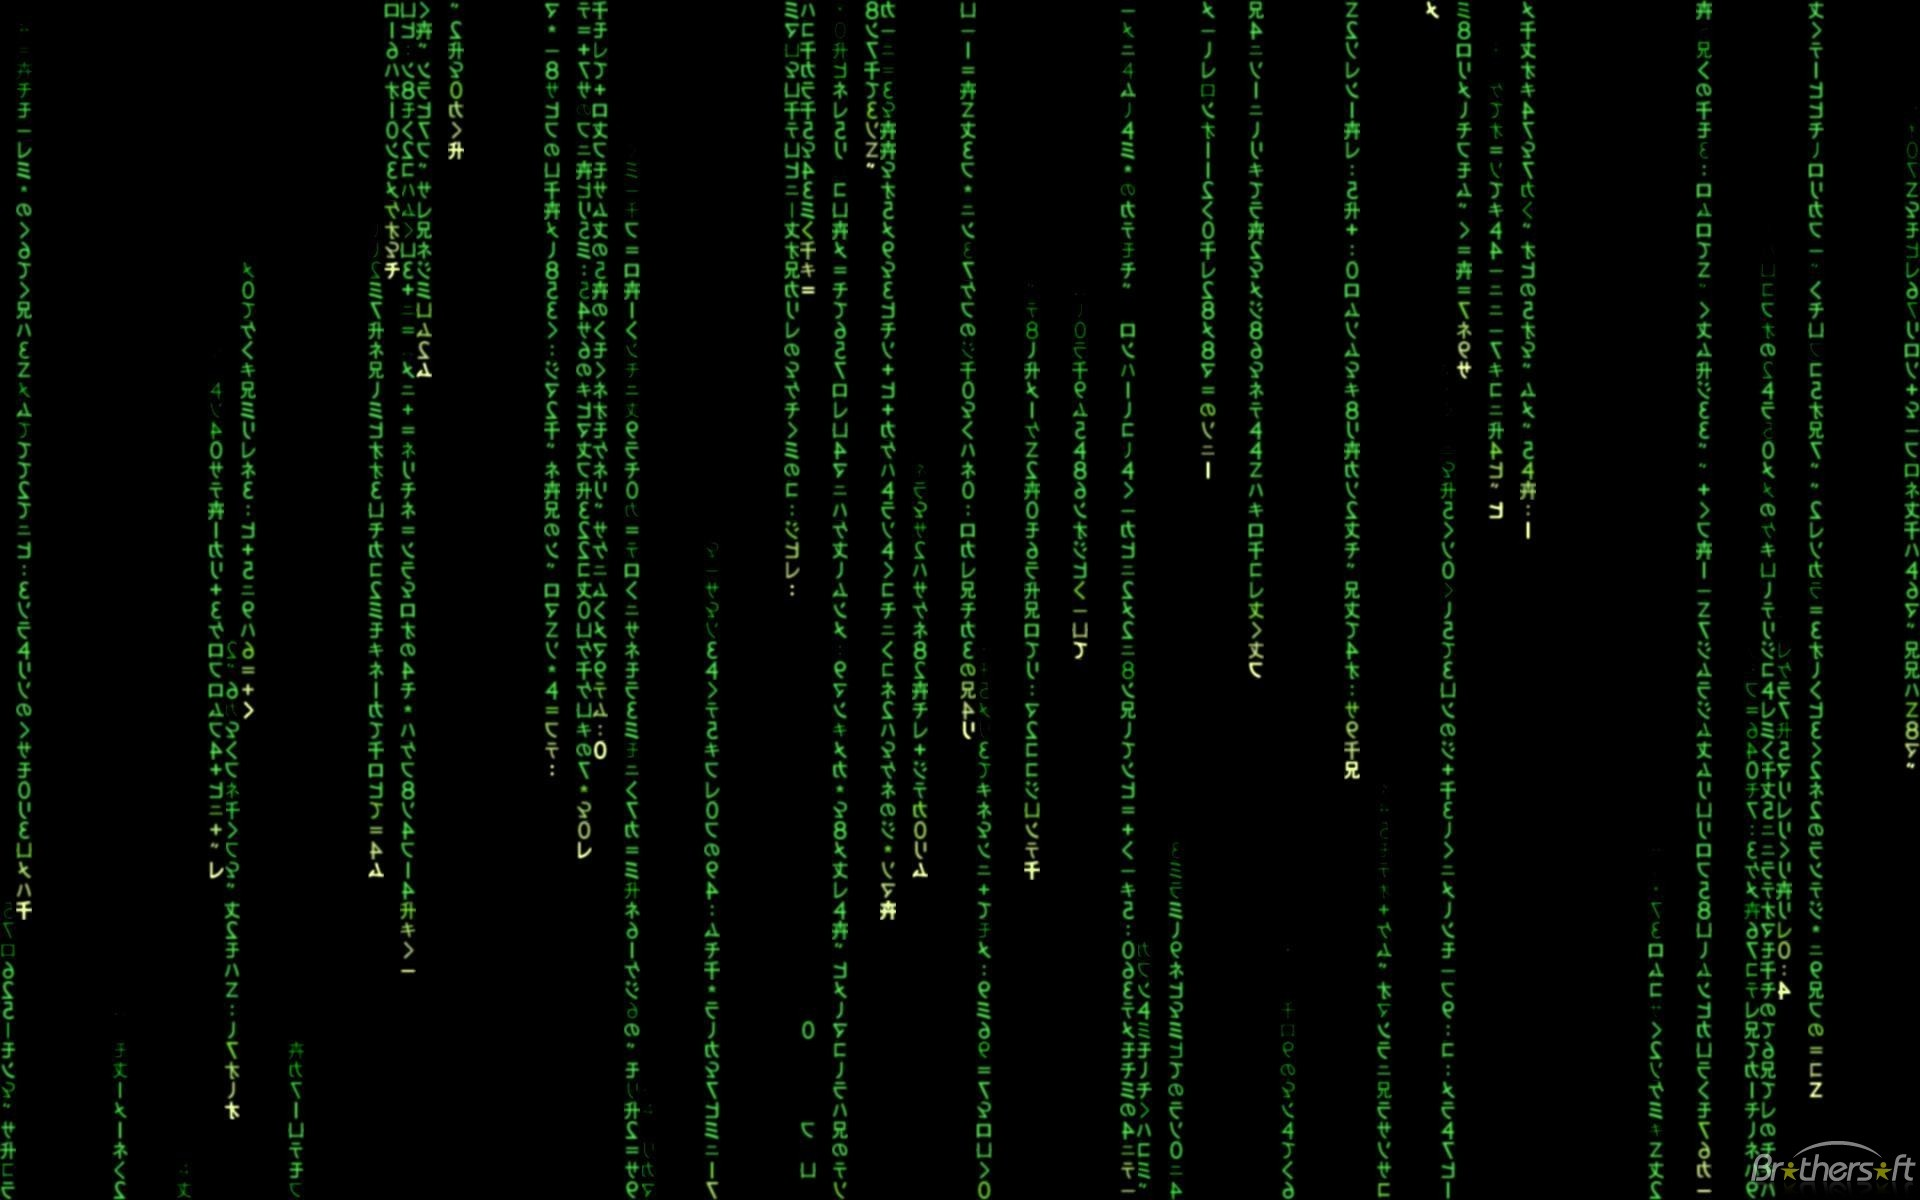 The matrix wallpaper download free full hd backgrounds for desktop mobile laptop in any - Matrix wallpaper download free ...